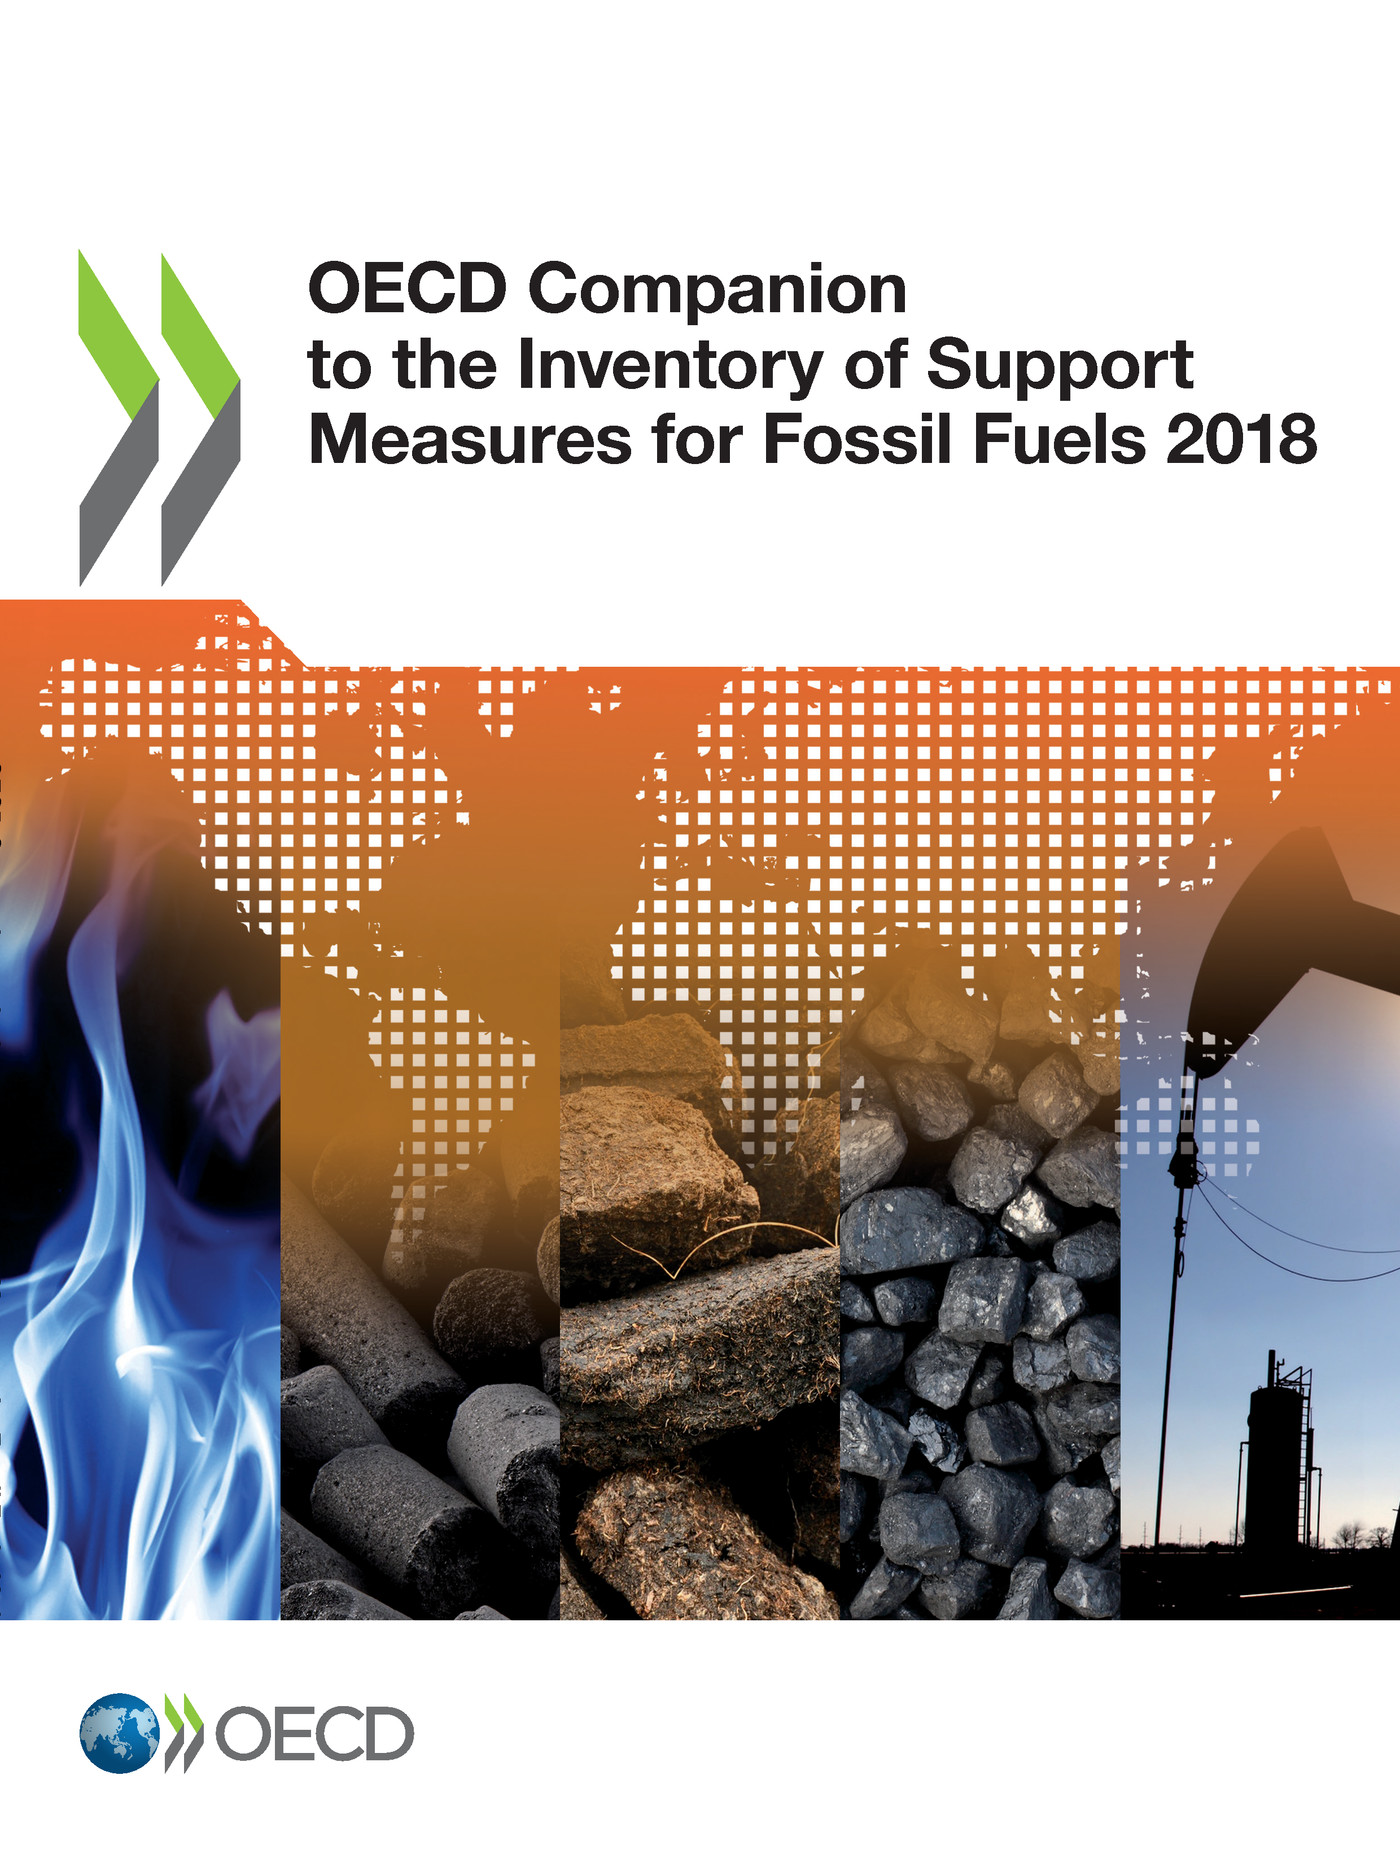 OECD Companion to the Inventory of Support Measures for Fossil Fuels 2018 De  Collectif - OCDE / OECD